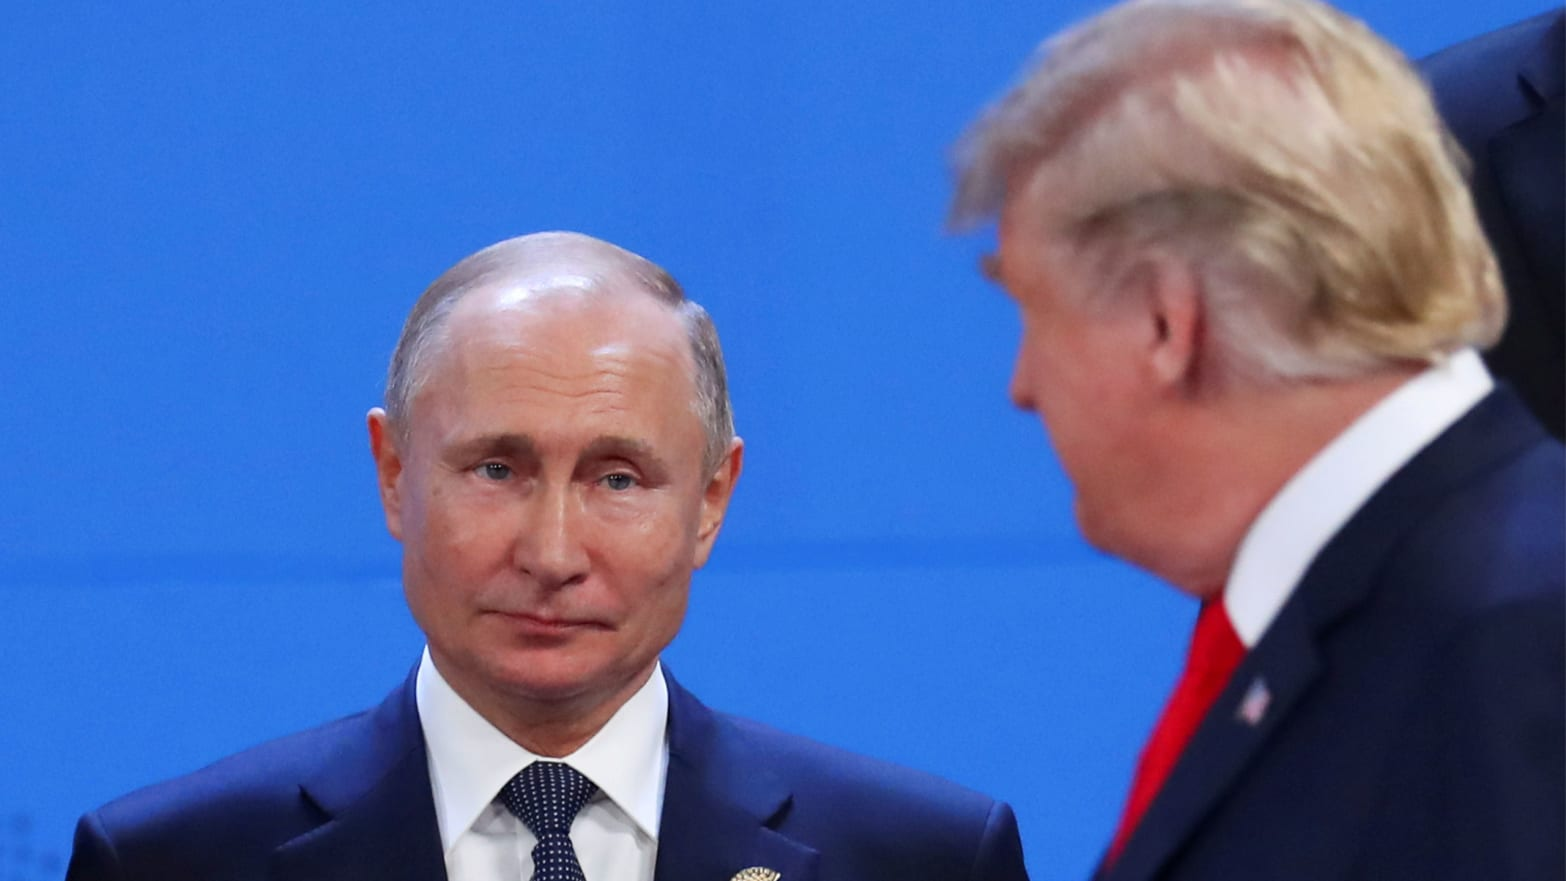 Putin's Media Roasts Trump: Russia 'Should Spit' on Him and the United States